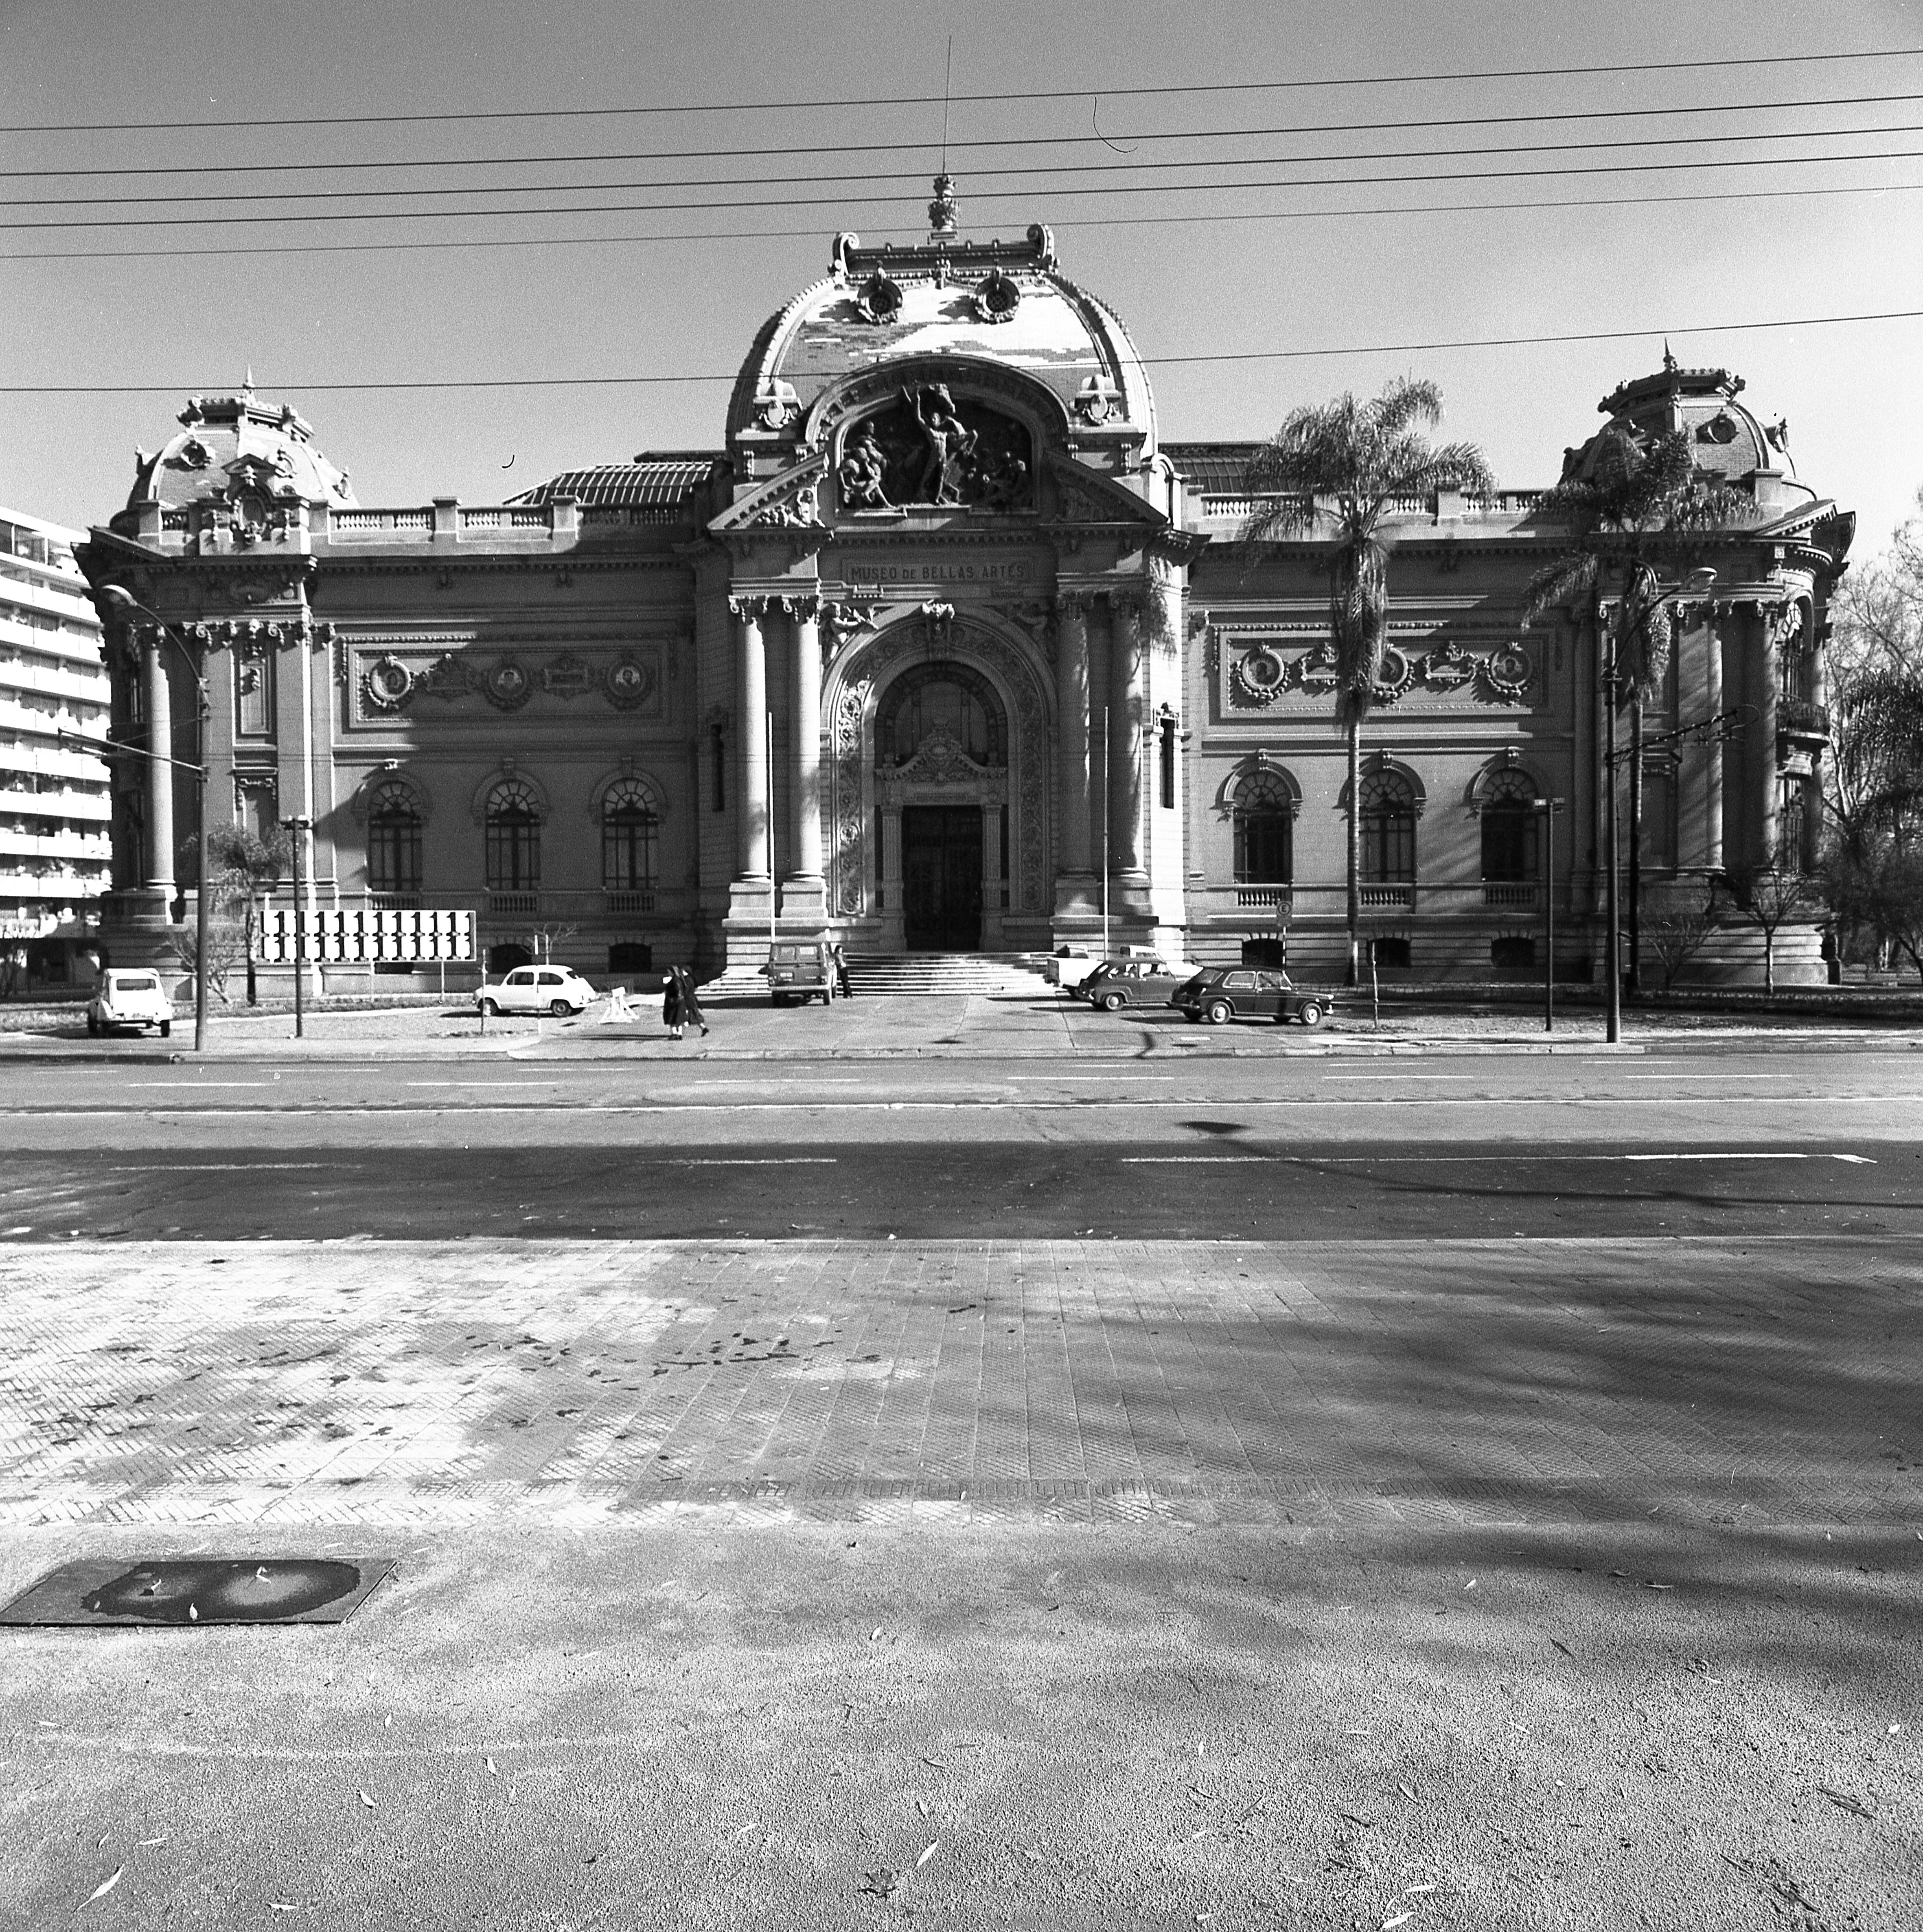 Enterreno - Fotos históricas de chile - fotos antiguas de Chile - Museo Nacional de Bellas Artes en 1975